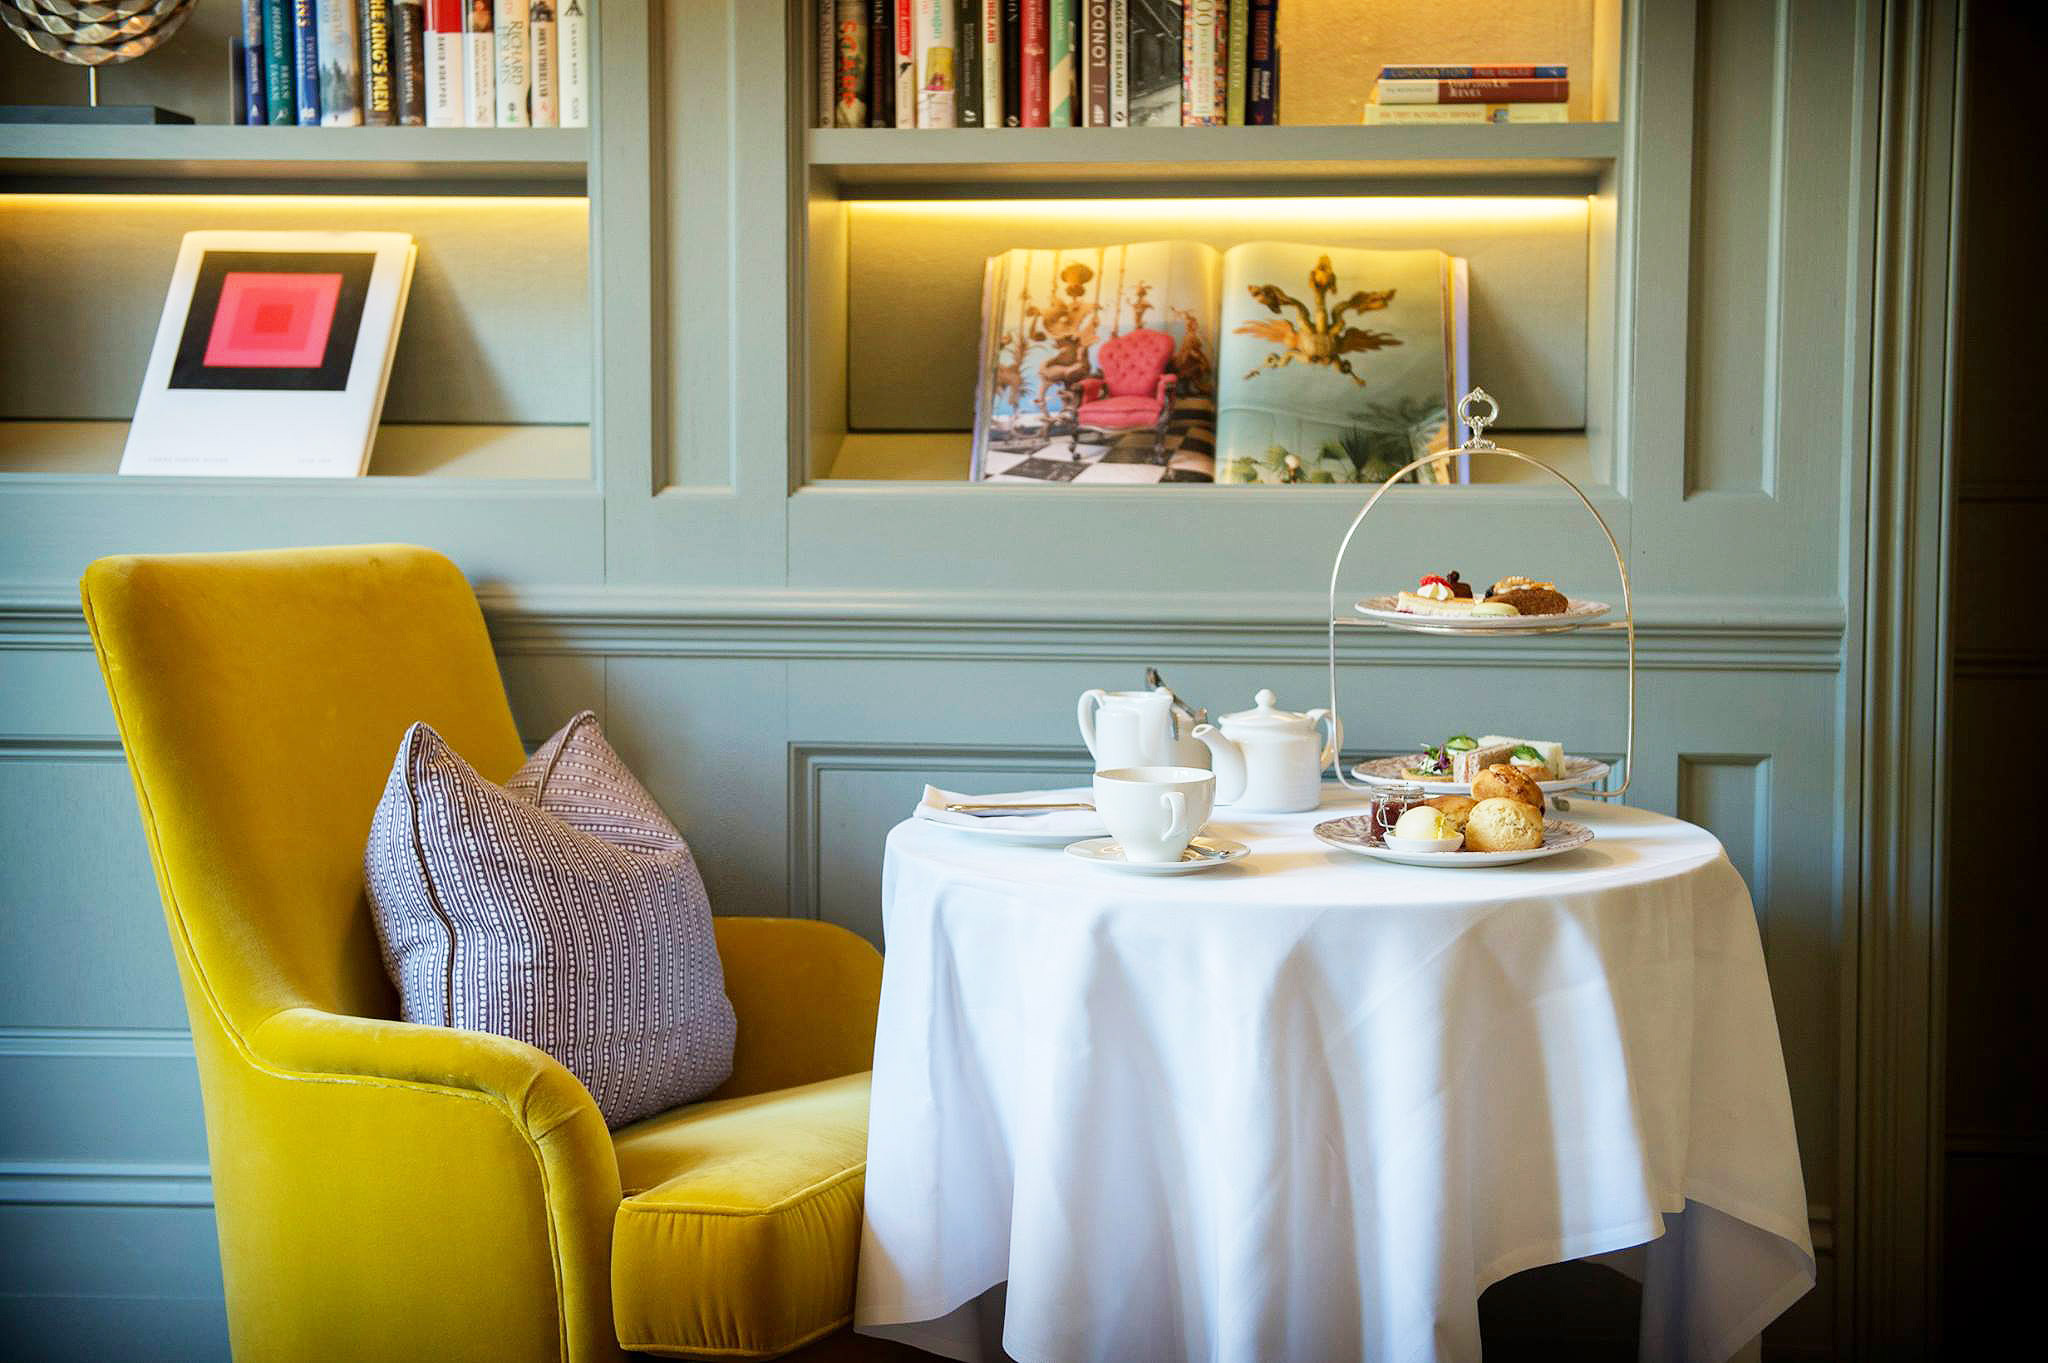 The Kensington hotel, London has launched its delicious gluten-free afternoon teas, including complimentary Botticelli Reimagined tickets at the V&A. Gina Baksa tucks in her napkin…